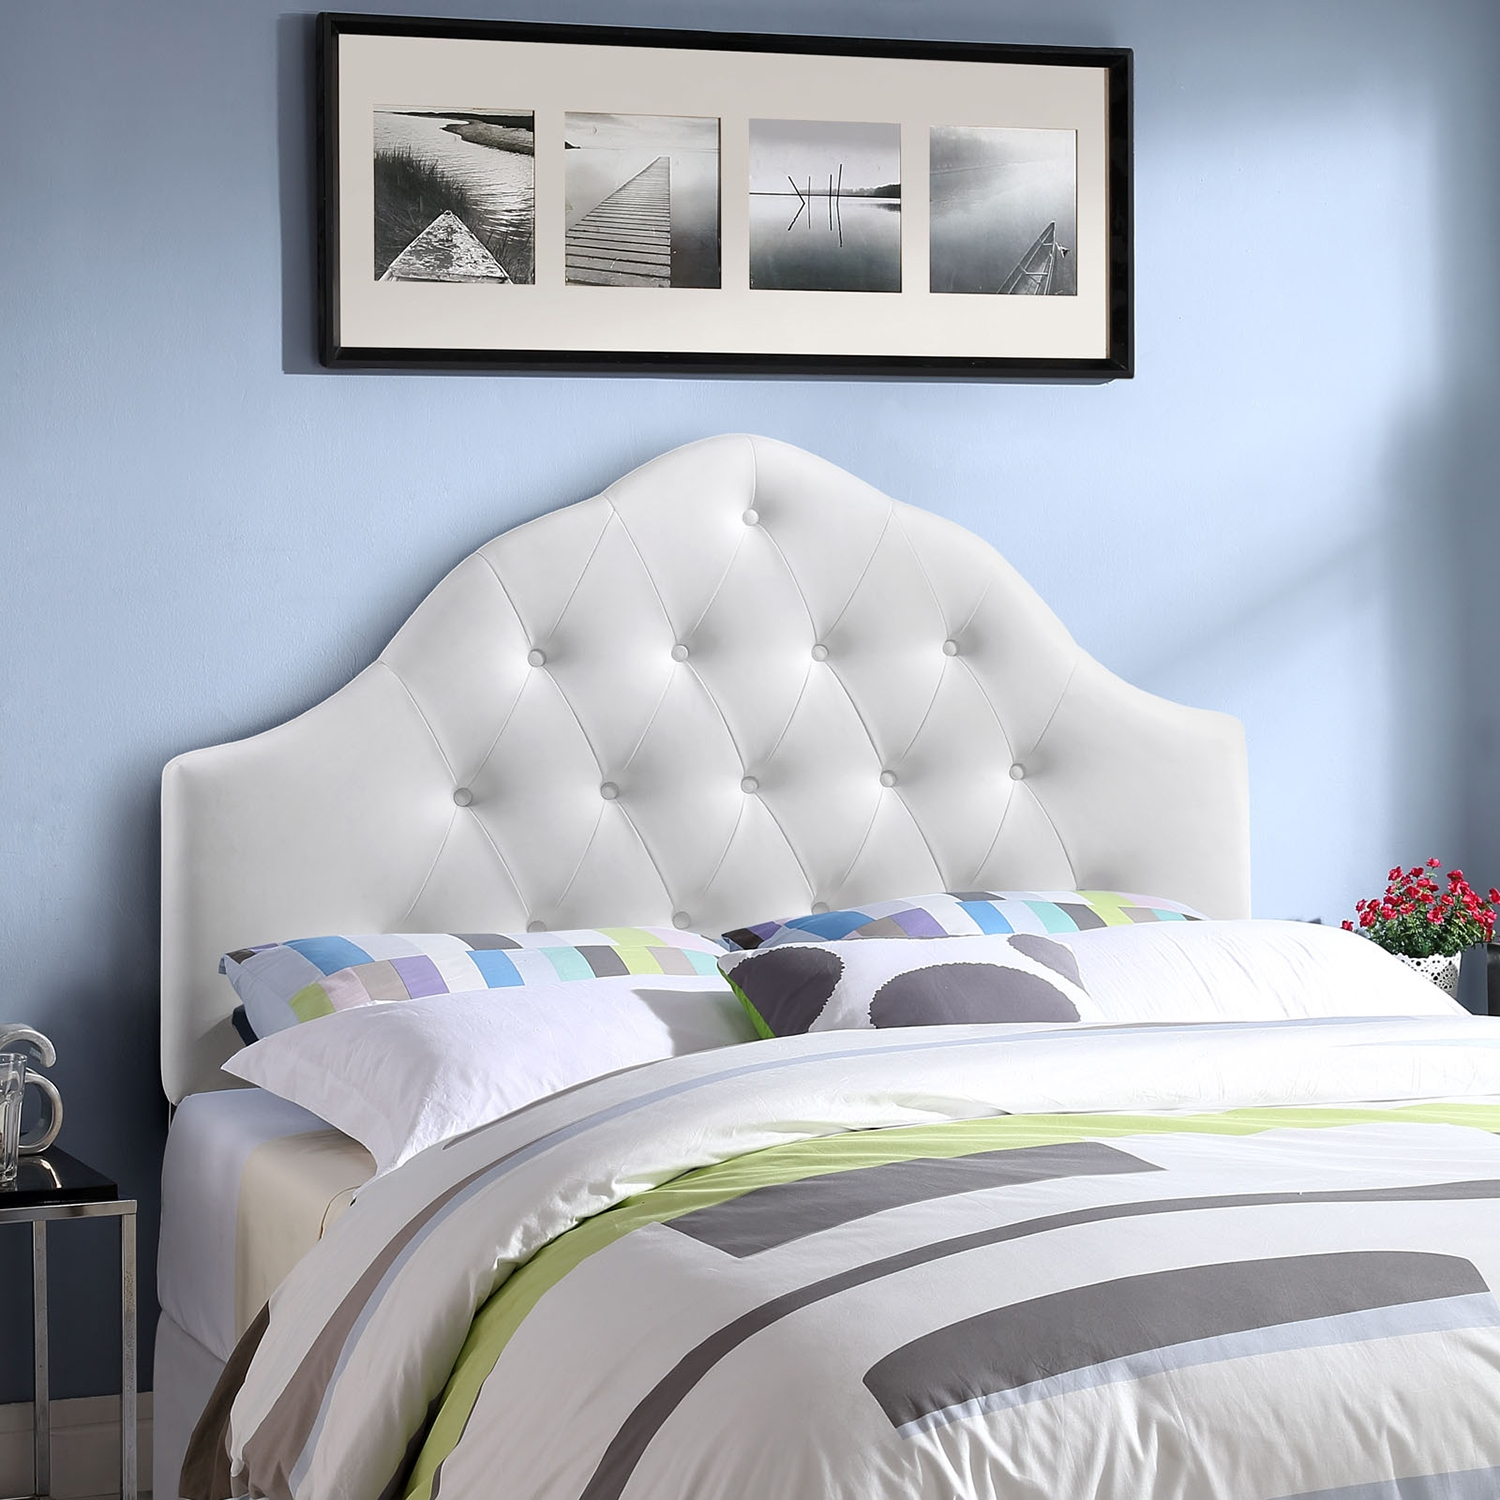 Sovereign Leatherette Headboard - Button Tufted, White - EEI-MOD-516-WHI